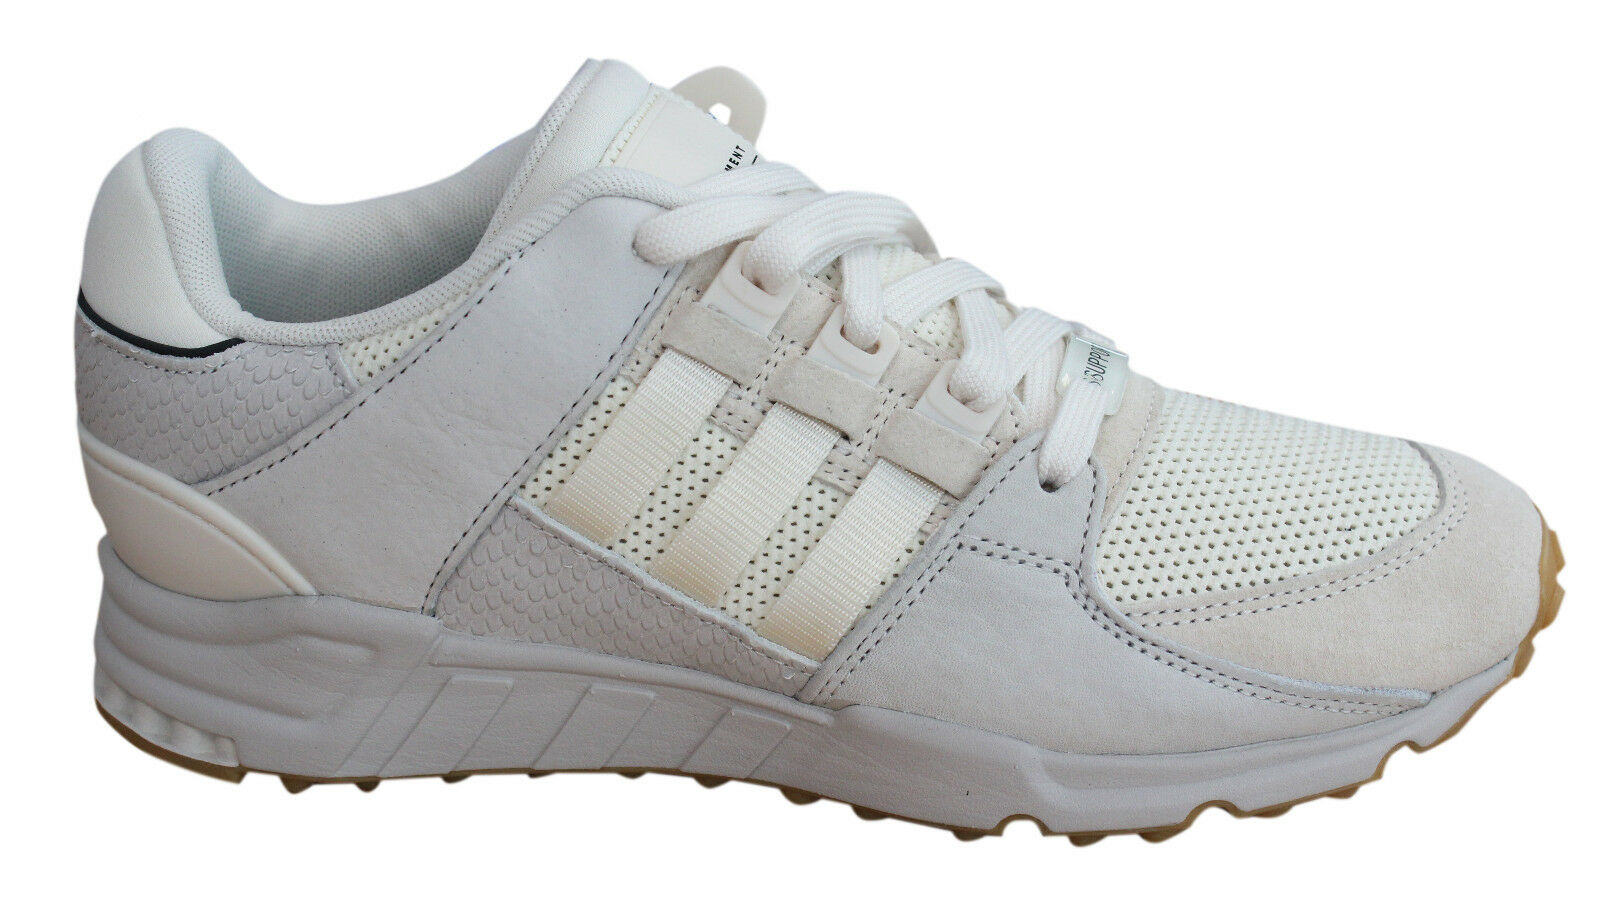 Adidas Equipment Support Refined hommes Trainers Lace Up Chaussures blanc BY9616 D22